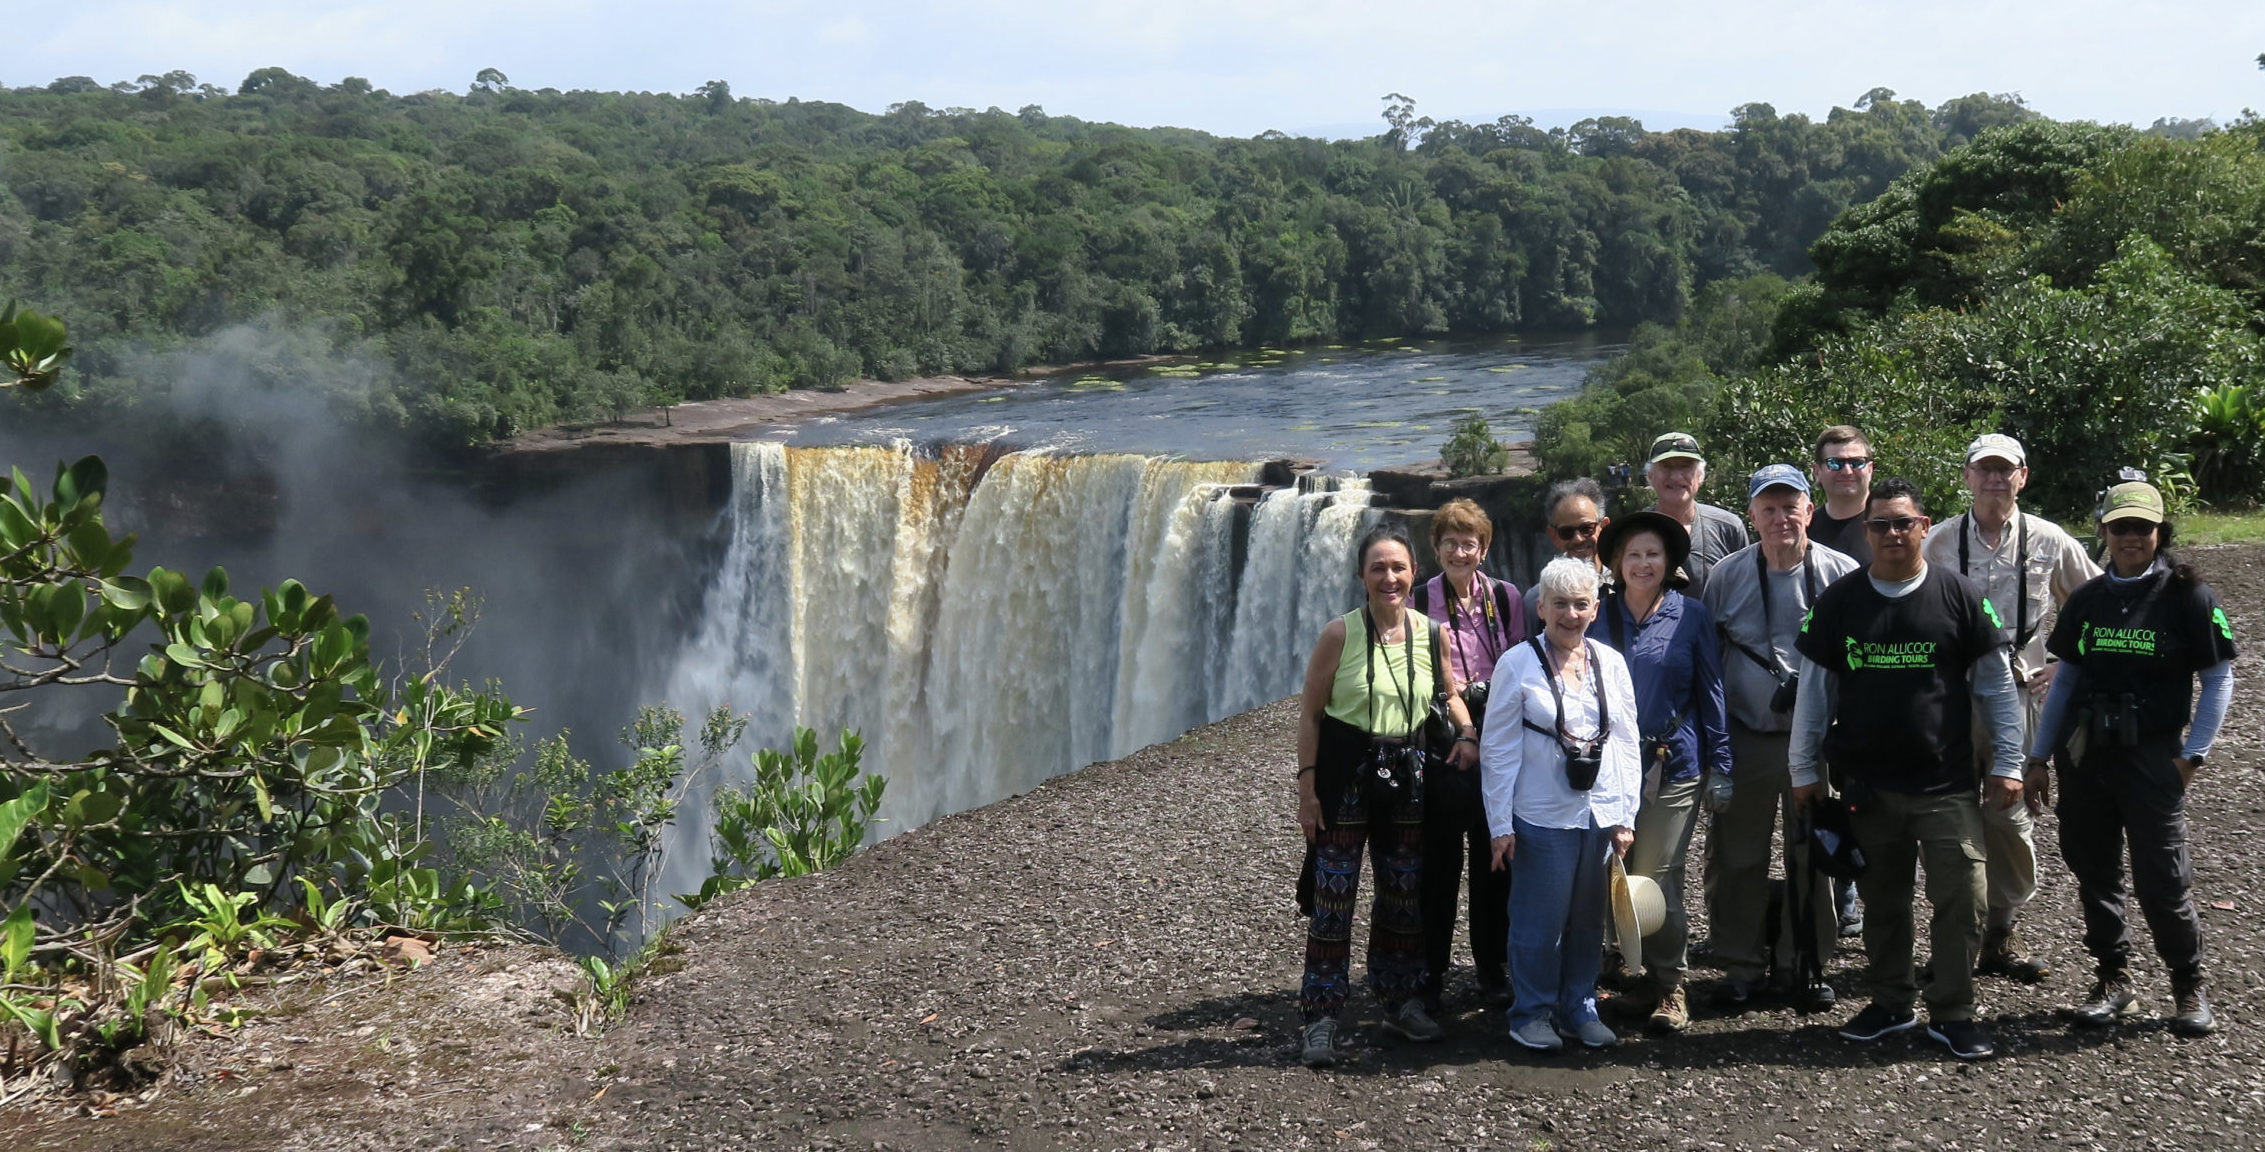 Guyana travel often includes a trip to Kaieteur Falls